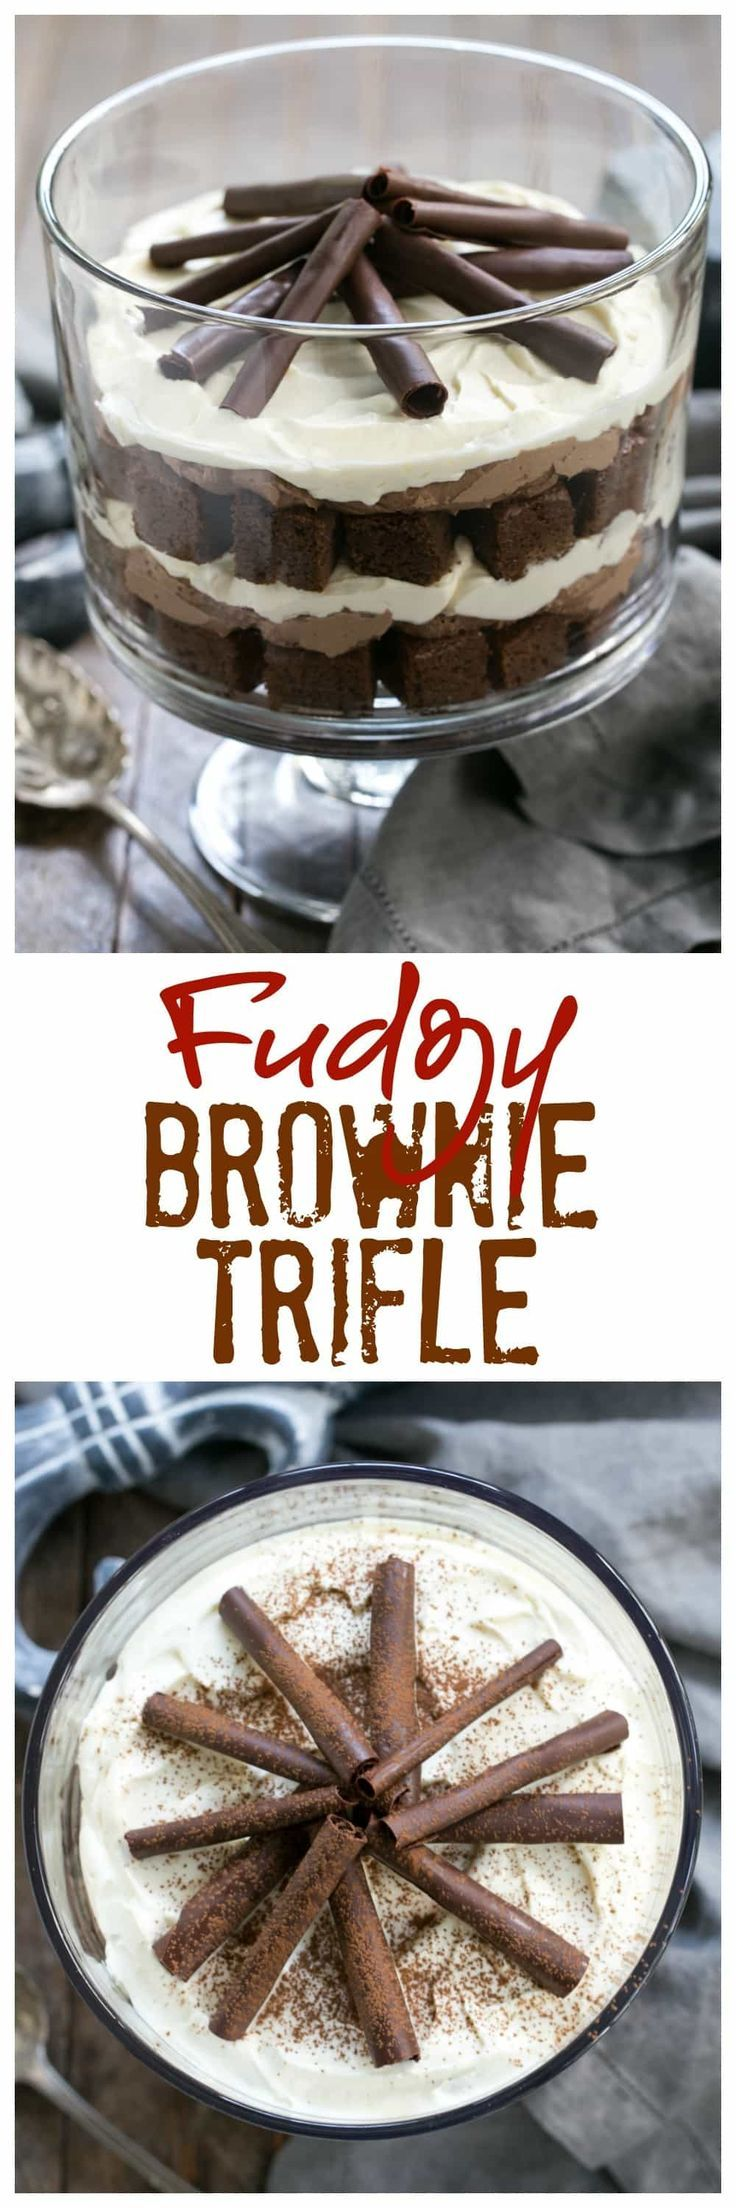 Fudgy Brownie Trifle with Chocolate Mousse   3 outrageously delicious layers plus chocolate curls! #SundaySupper #Trifle #chocolate @lizzydo